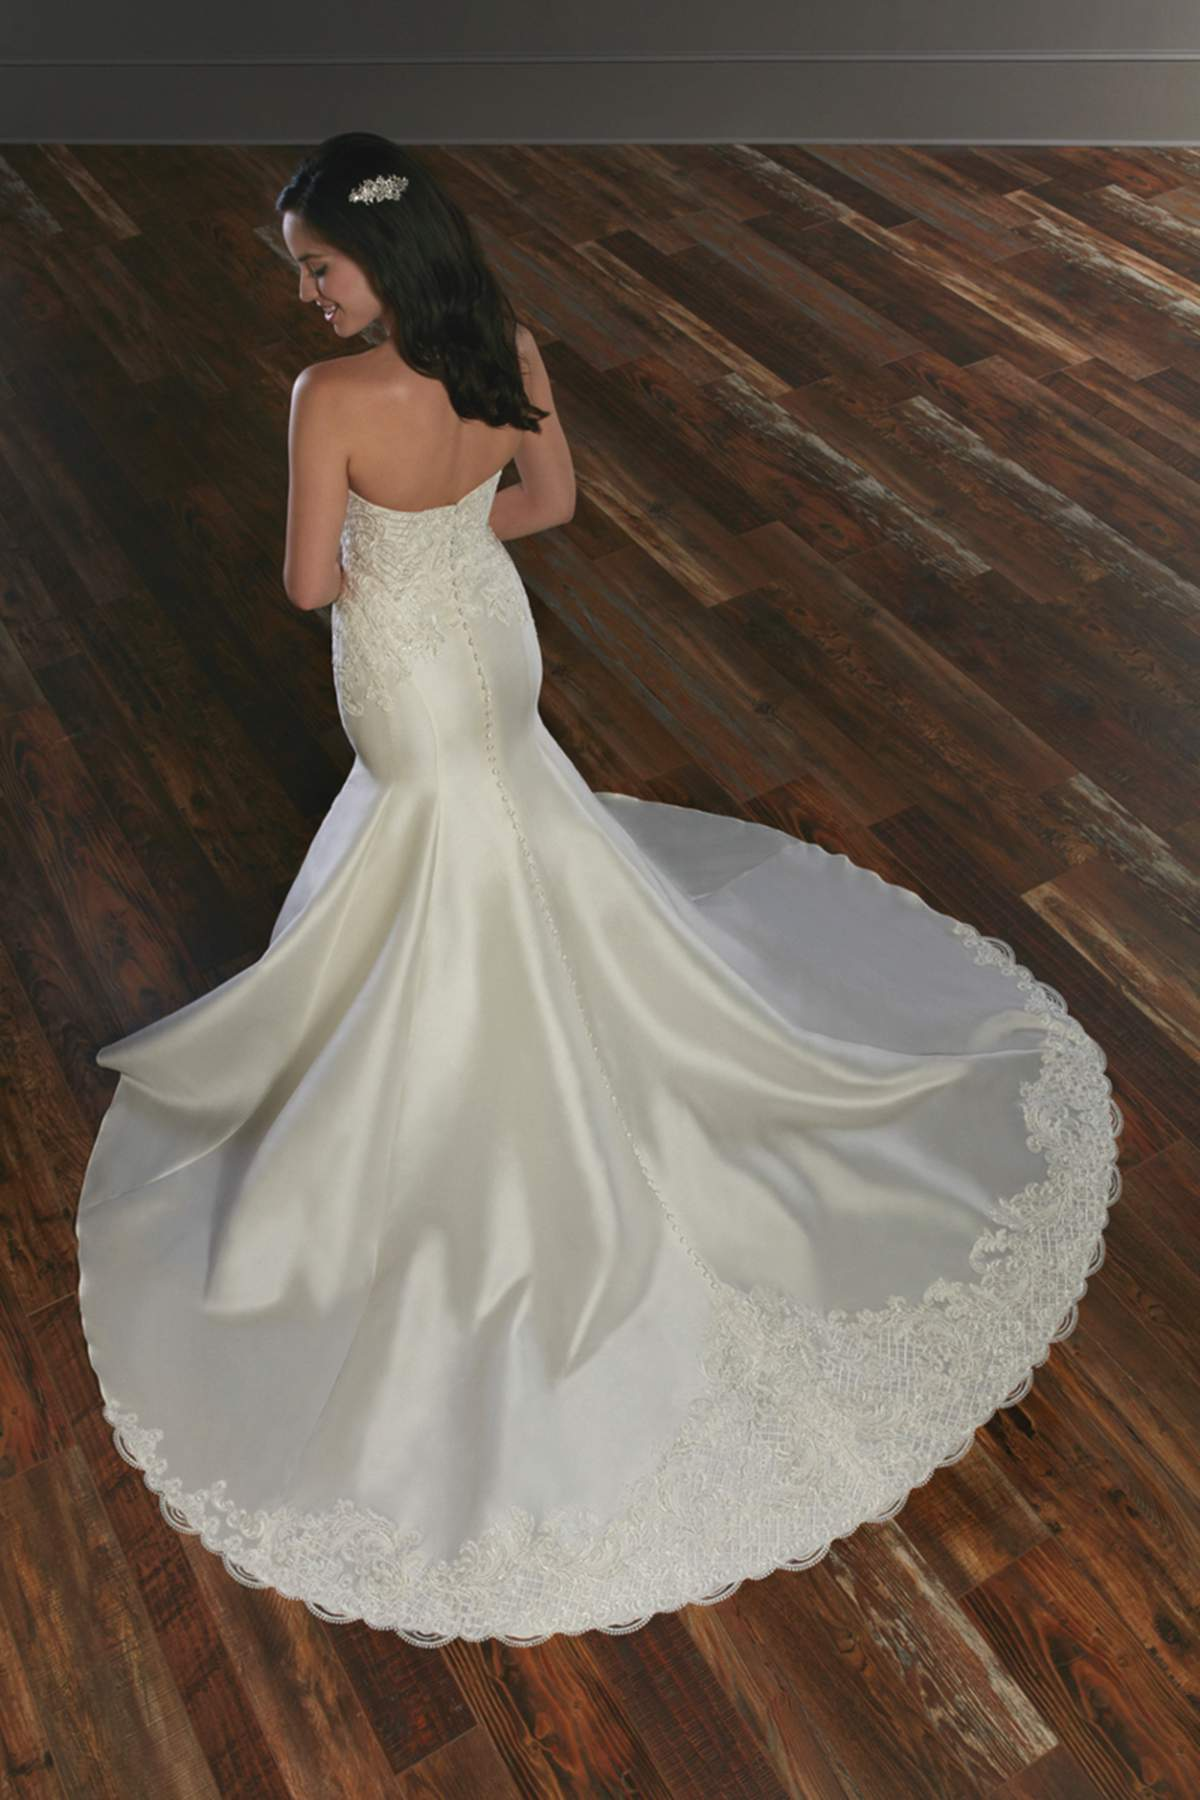 Style 20 by Martina Liana   Find Your Dream Dress